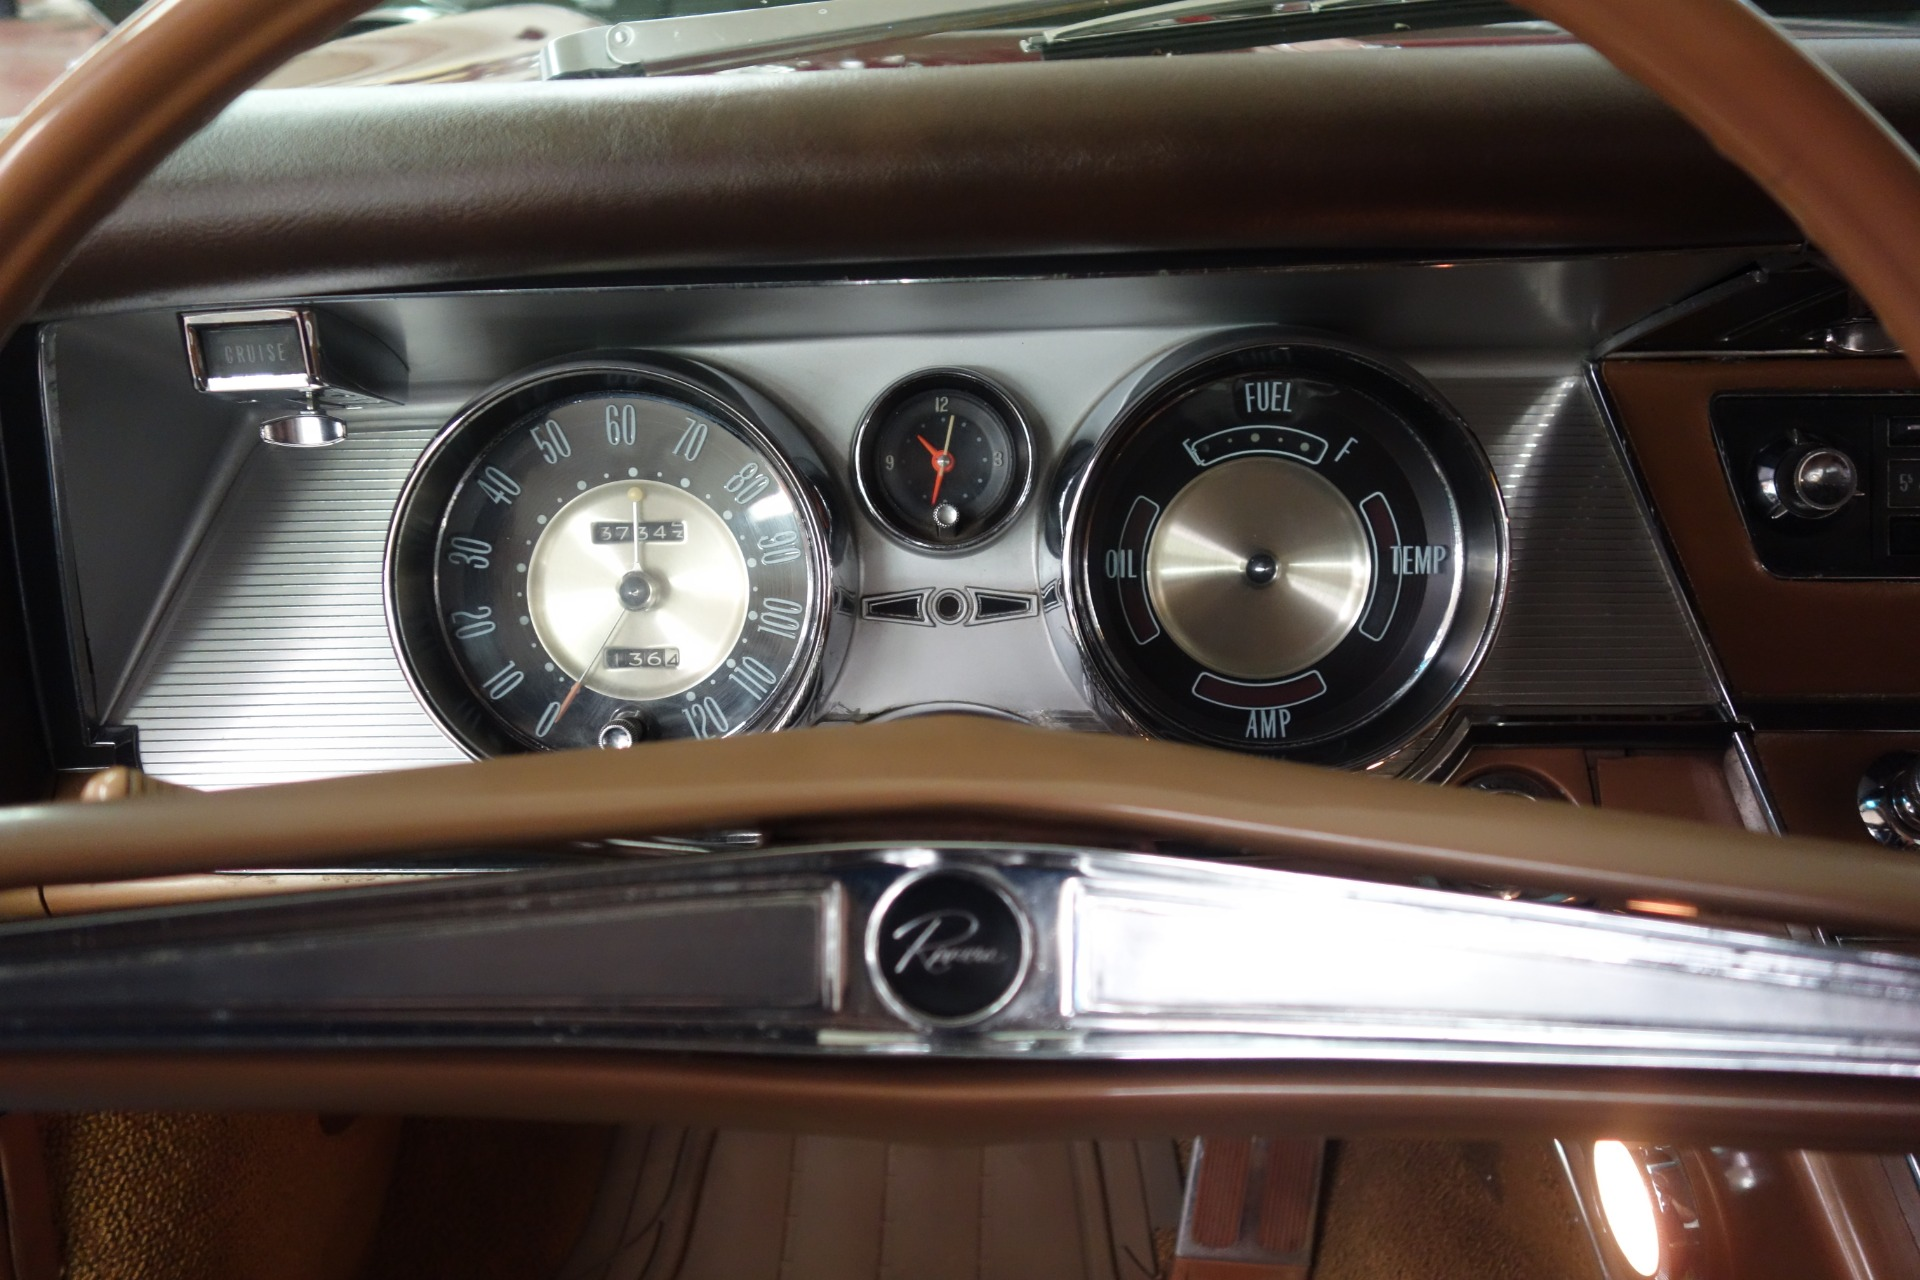 Used 1963 Buick Riviera -PRO TOURING LOOK-FACTORY ORIGINAL NAILHEAD 401- | Mundelein, IL